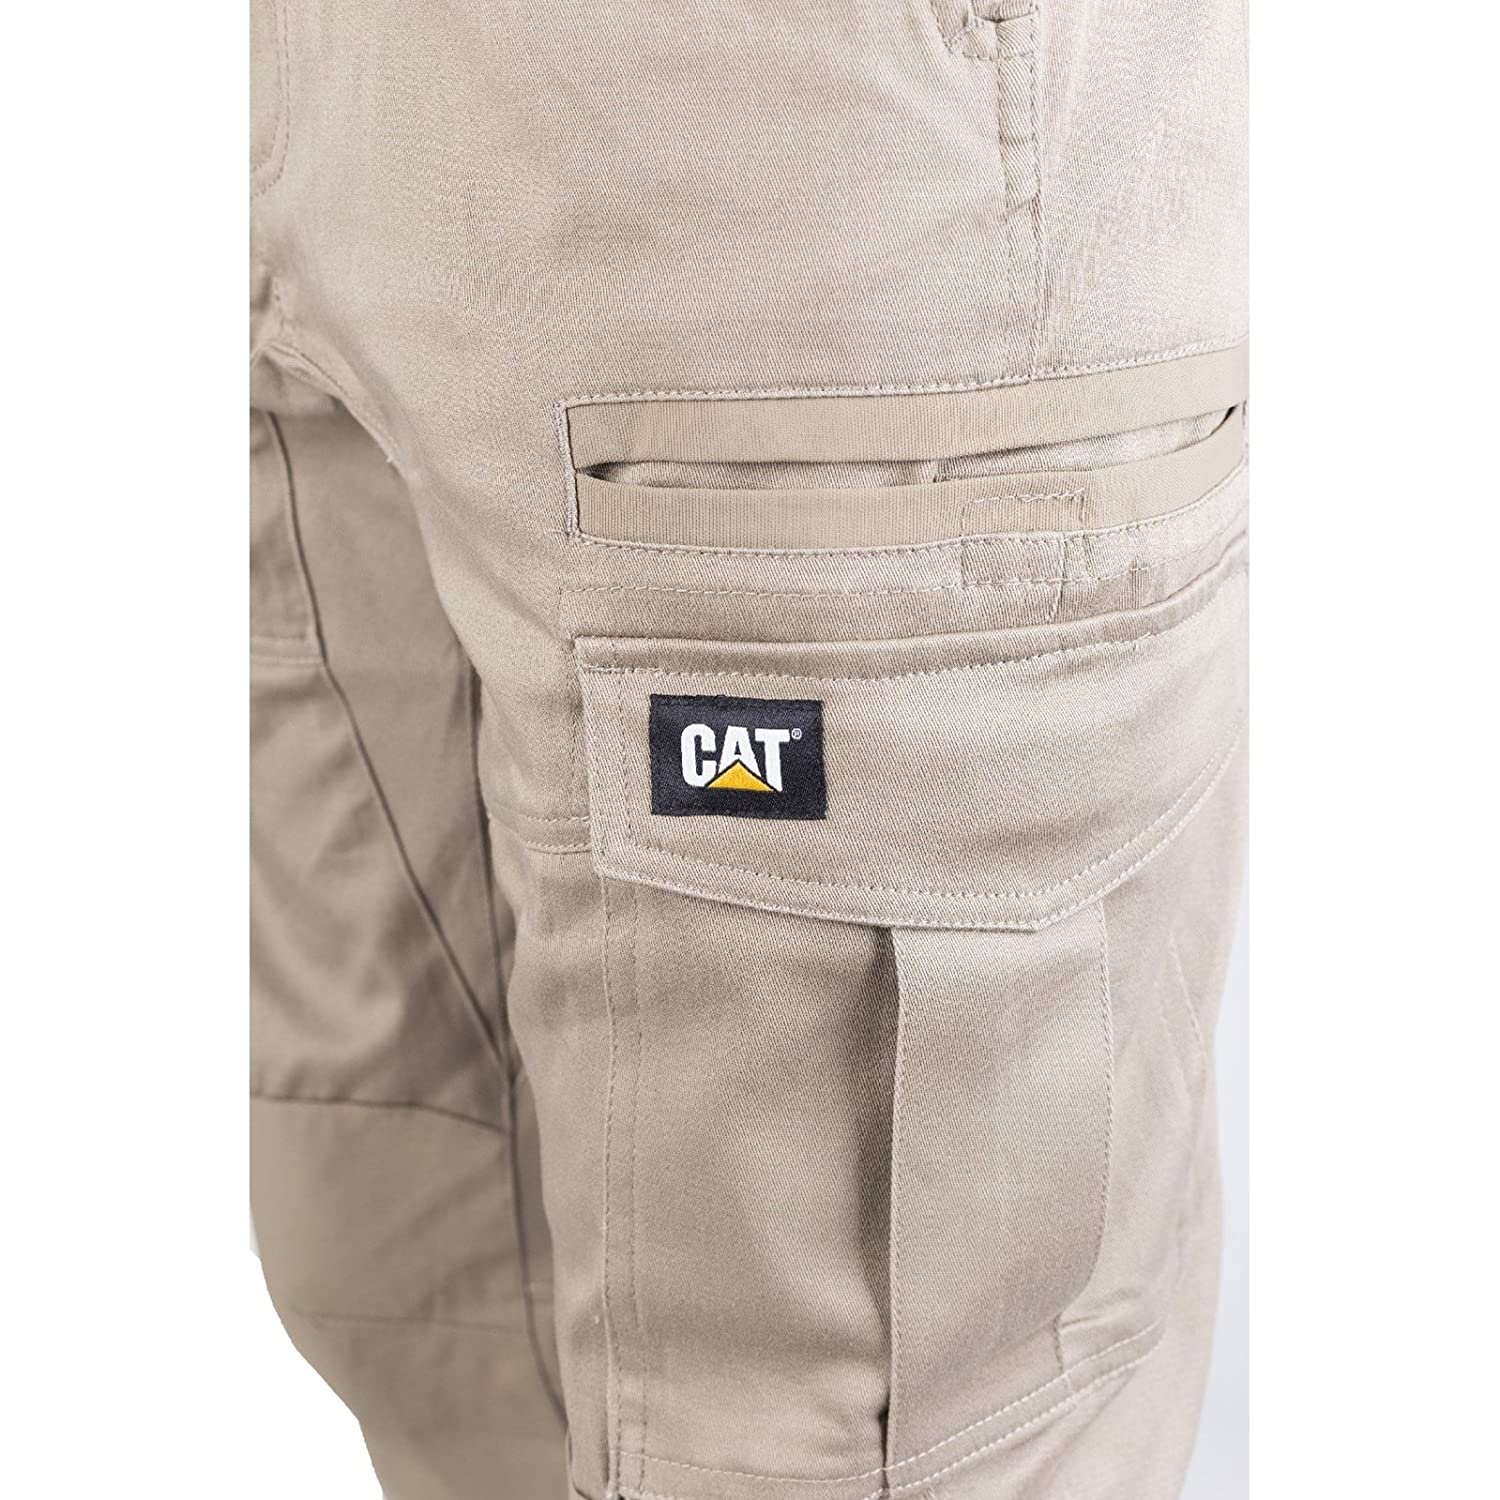 Caterpillar CAT Workwear Mens Dynamic Lightweight Industrial Work Pants Trousers